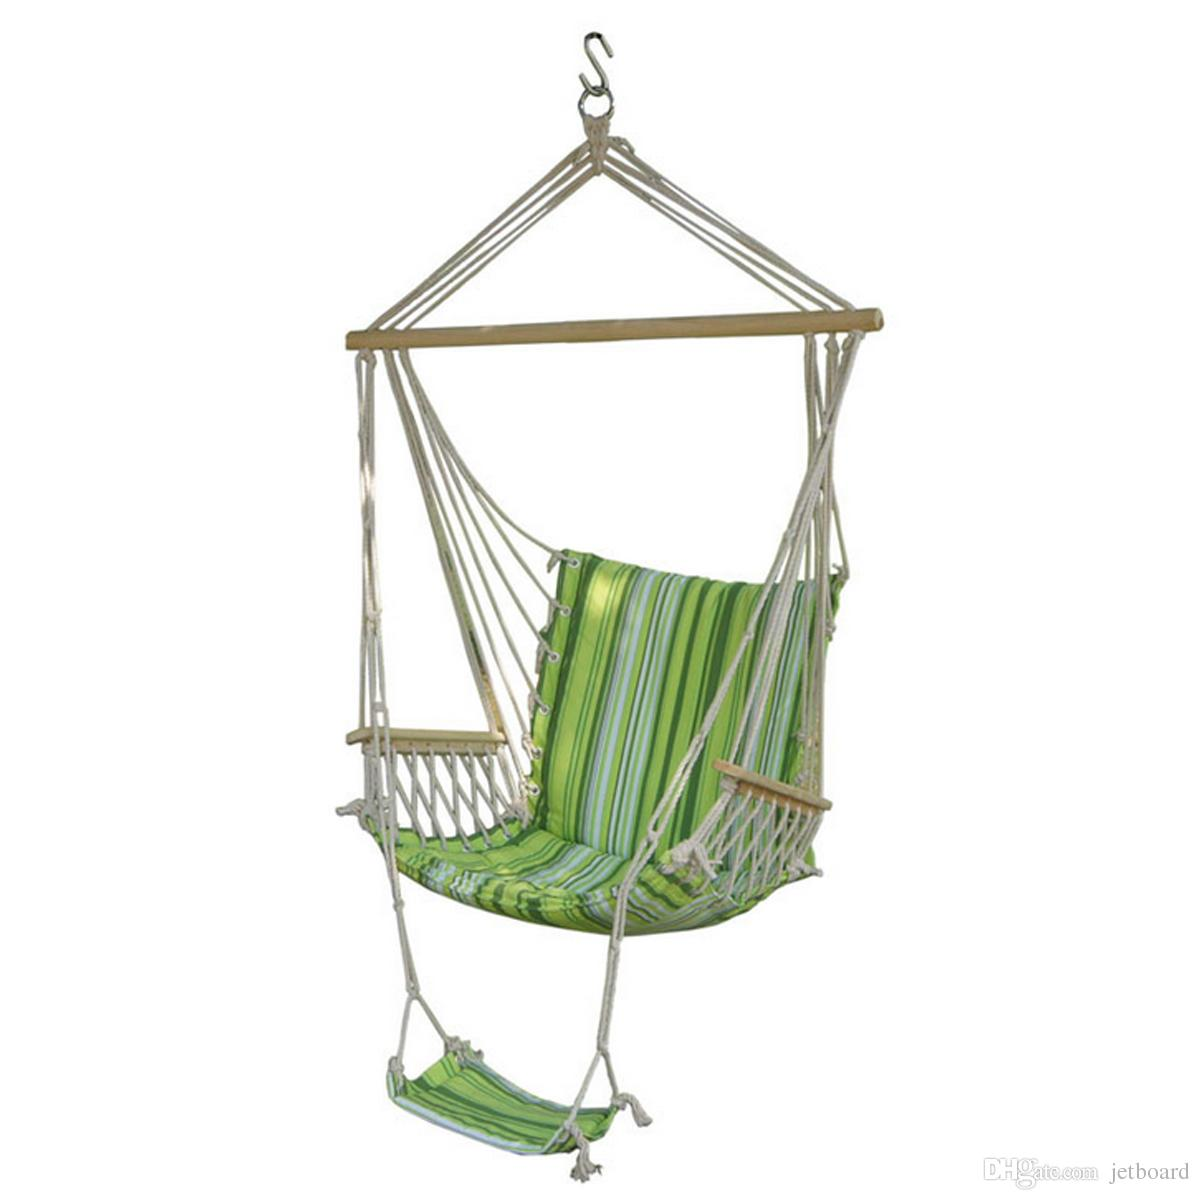 Outdoor Canvas Swing Hammock Leisure Hanging Chair Garden Patio Yard Max 330lbs Hanging Rope Hammock Swing Chair With Footrest Camping Furniture Patio